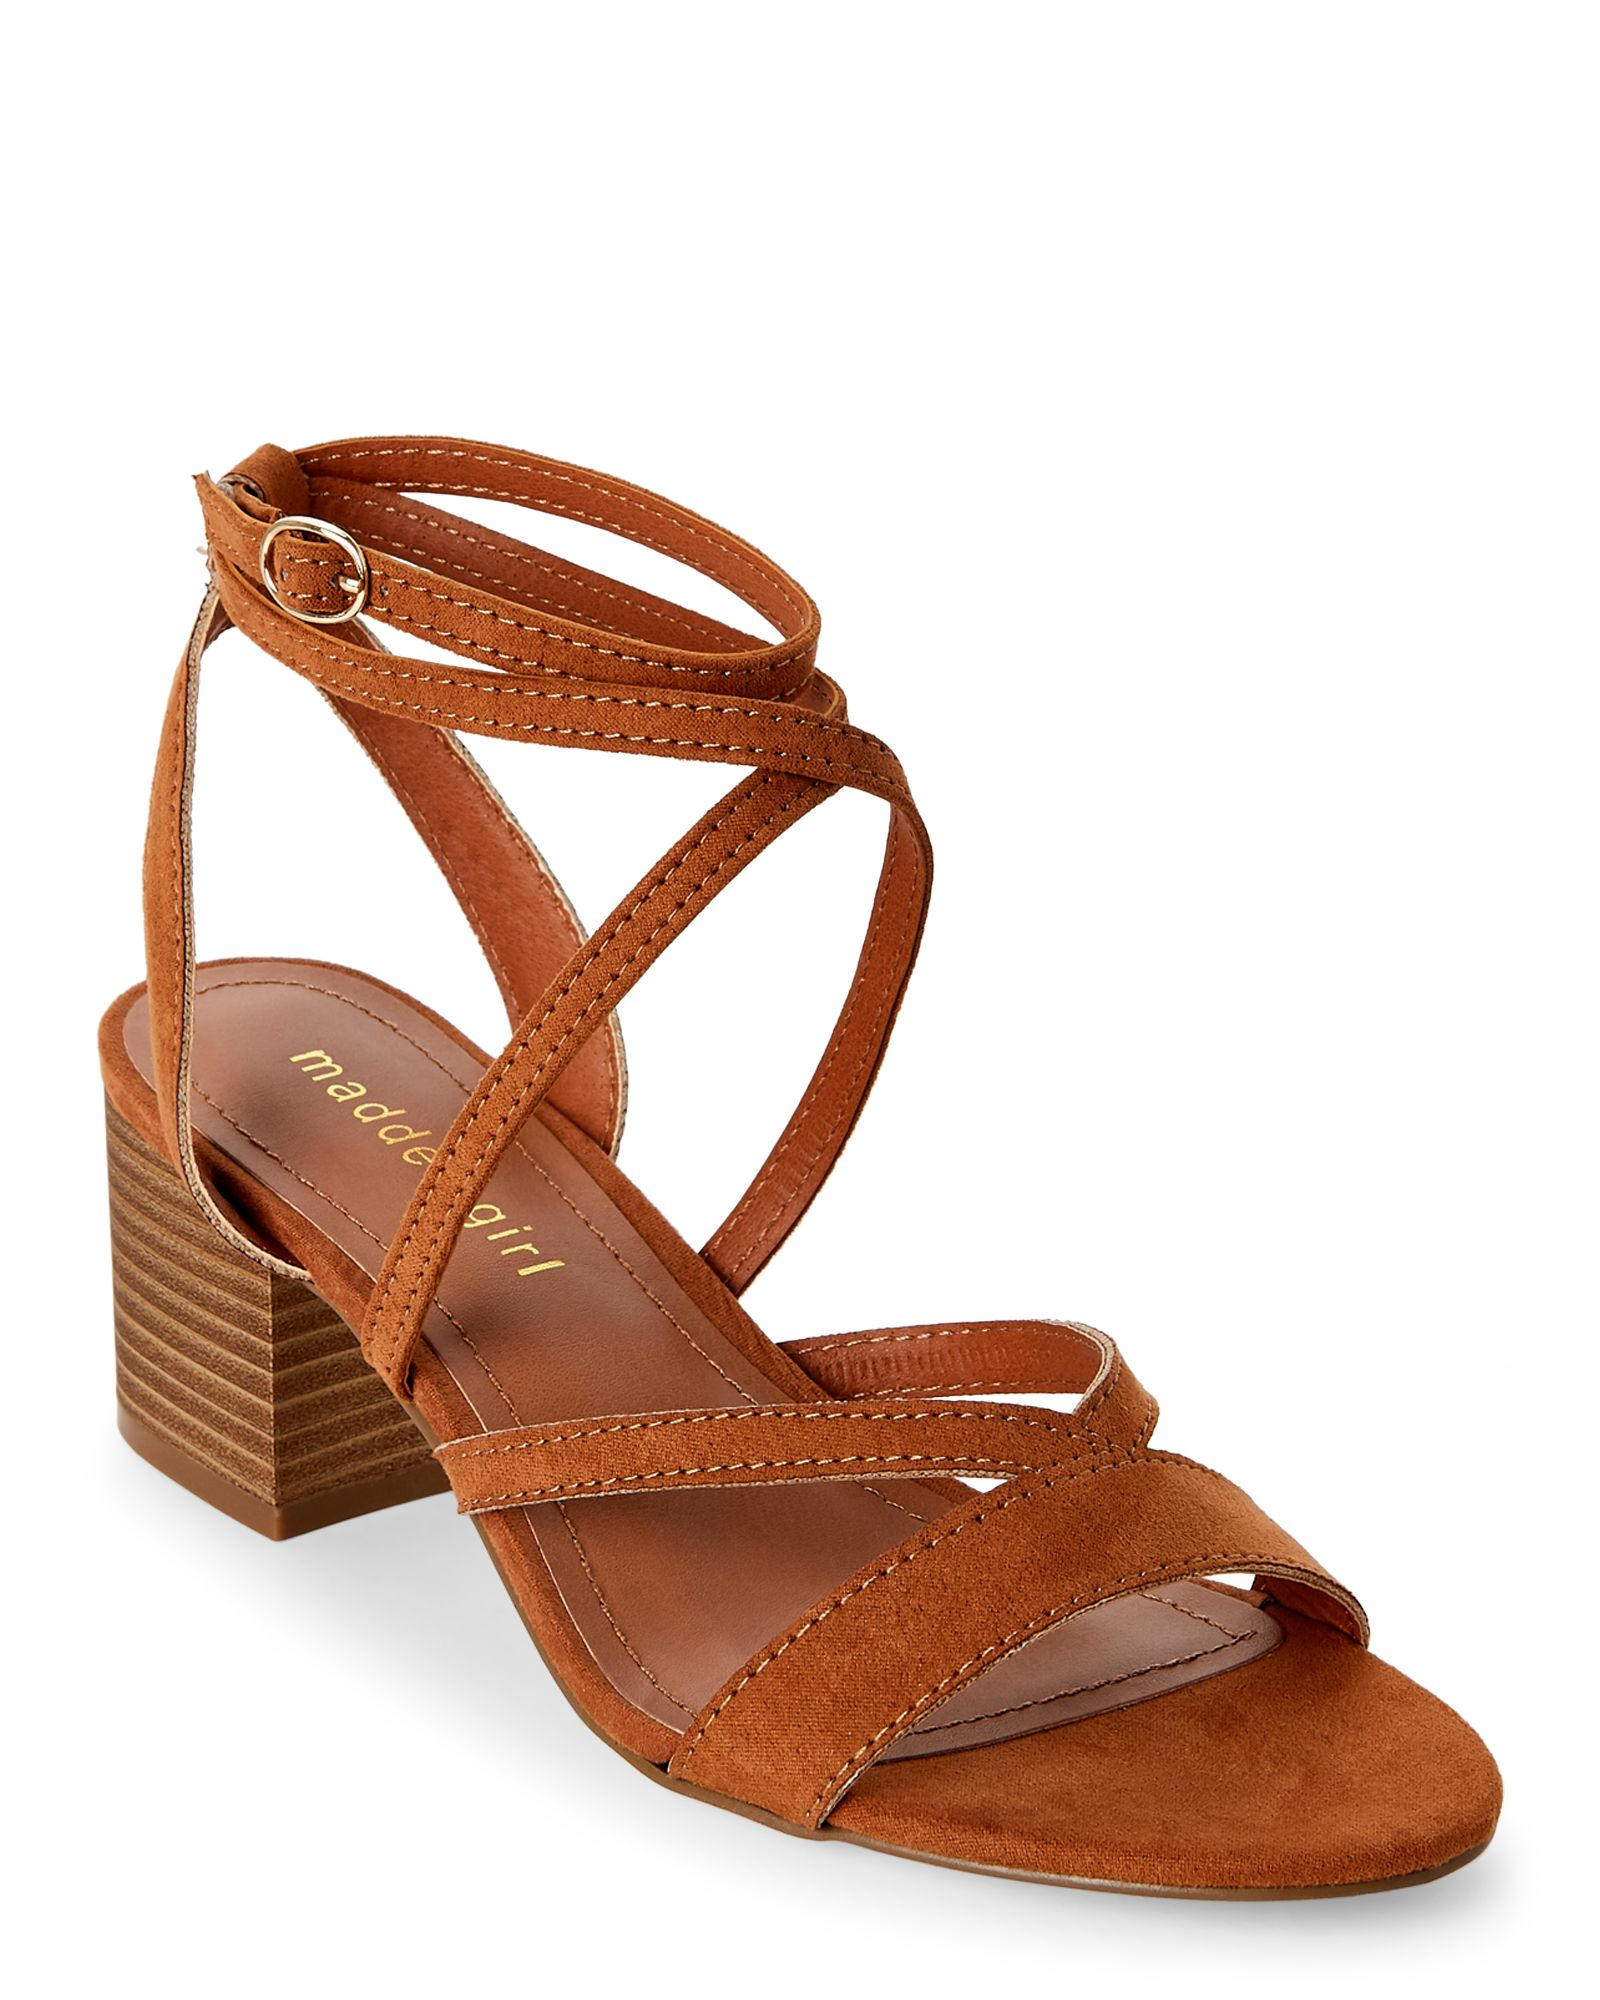 e90e05e3dcd Madden Girl Chestnut Leexi Strappy Block Heel Sandals